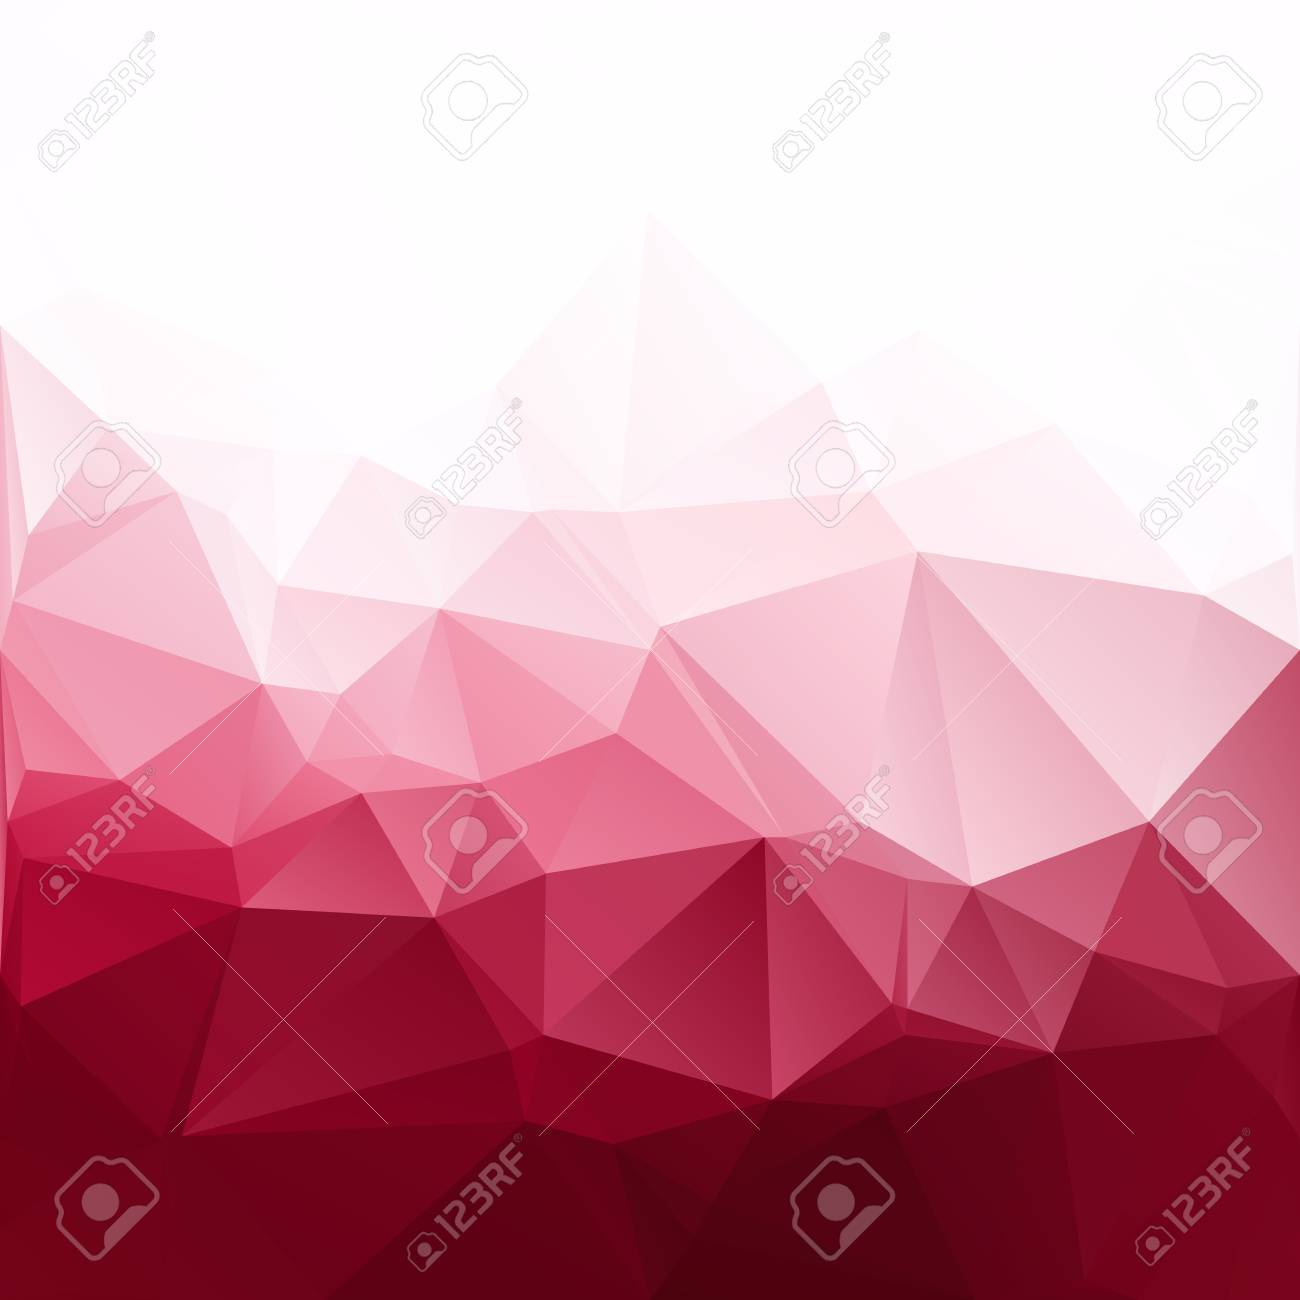 red polygonal mosaic background creative design templates royalty